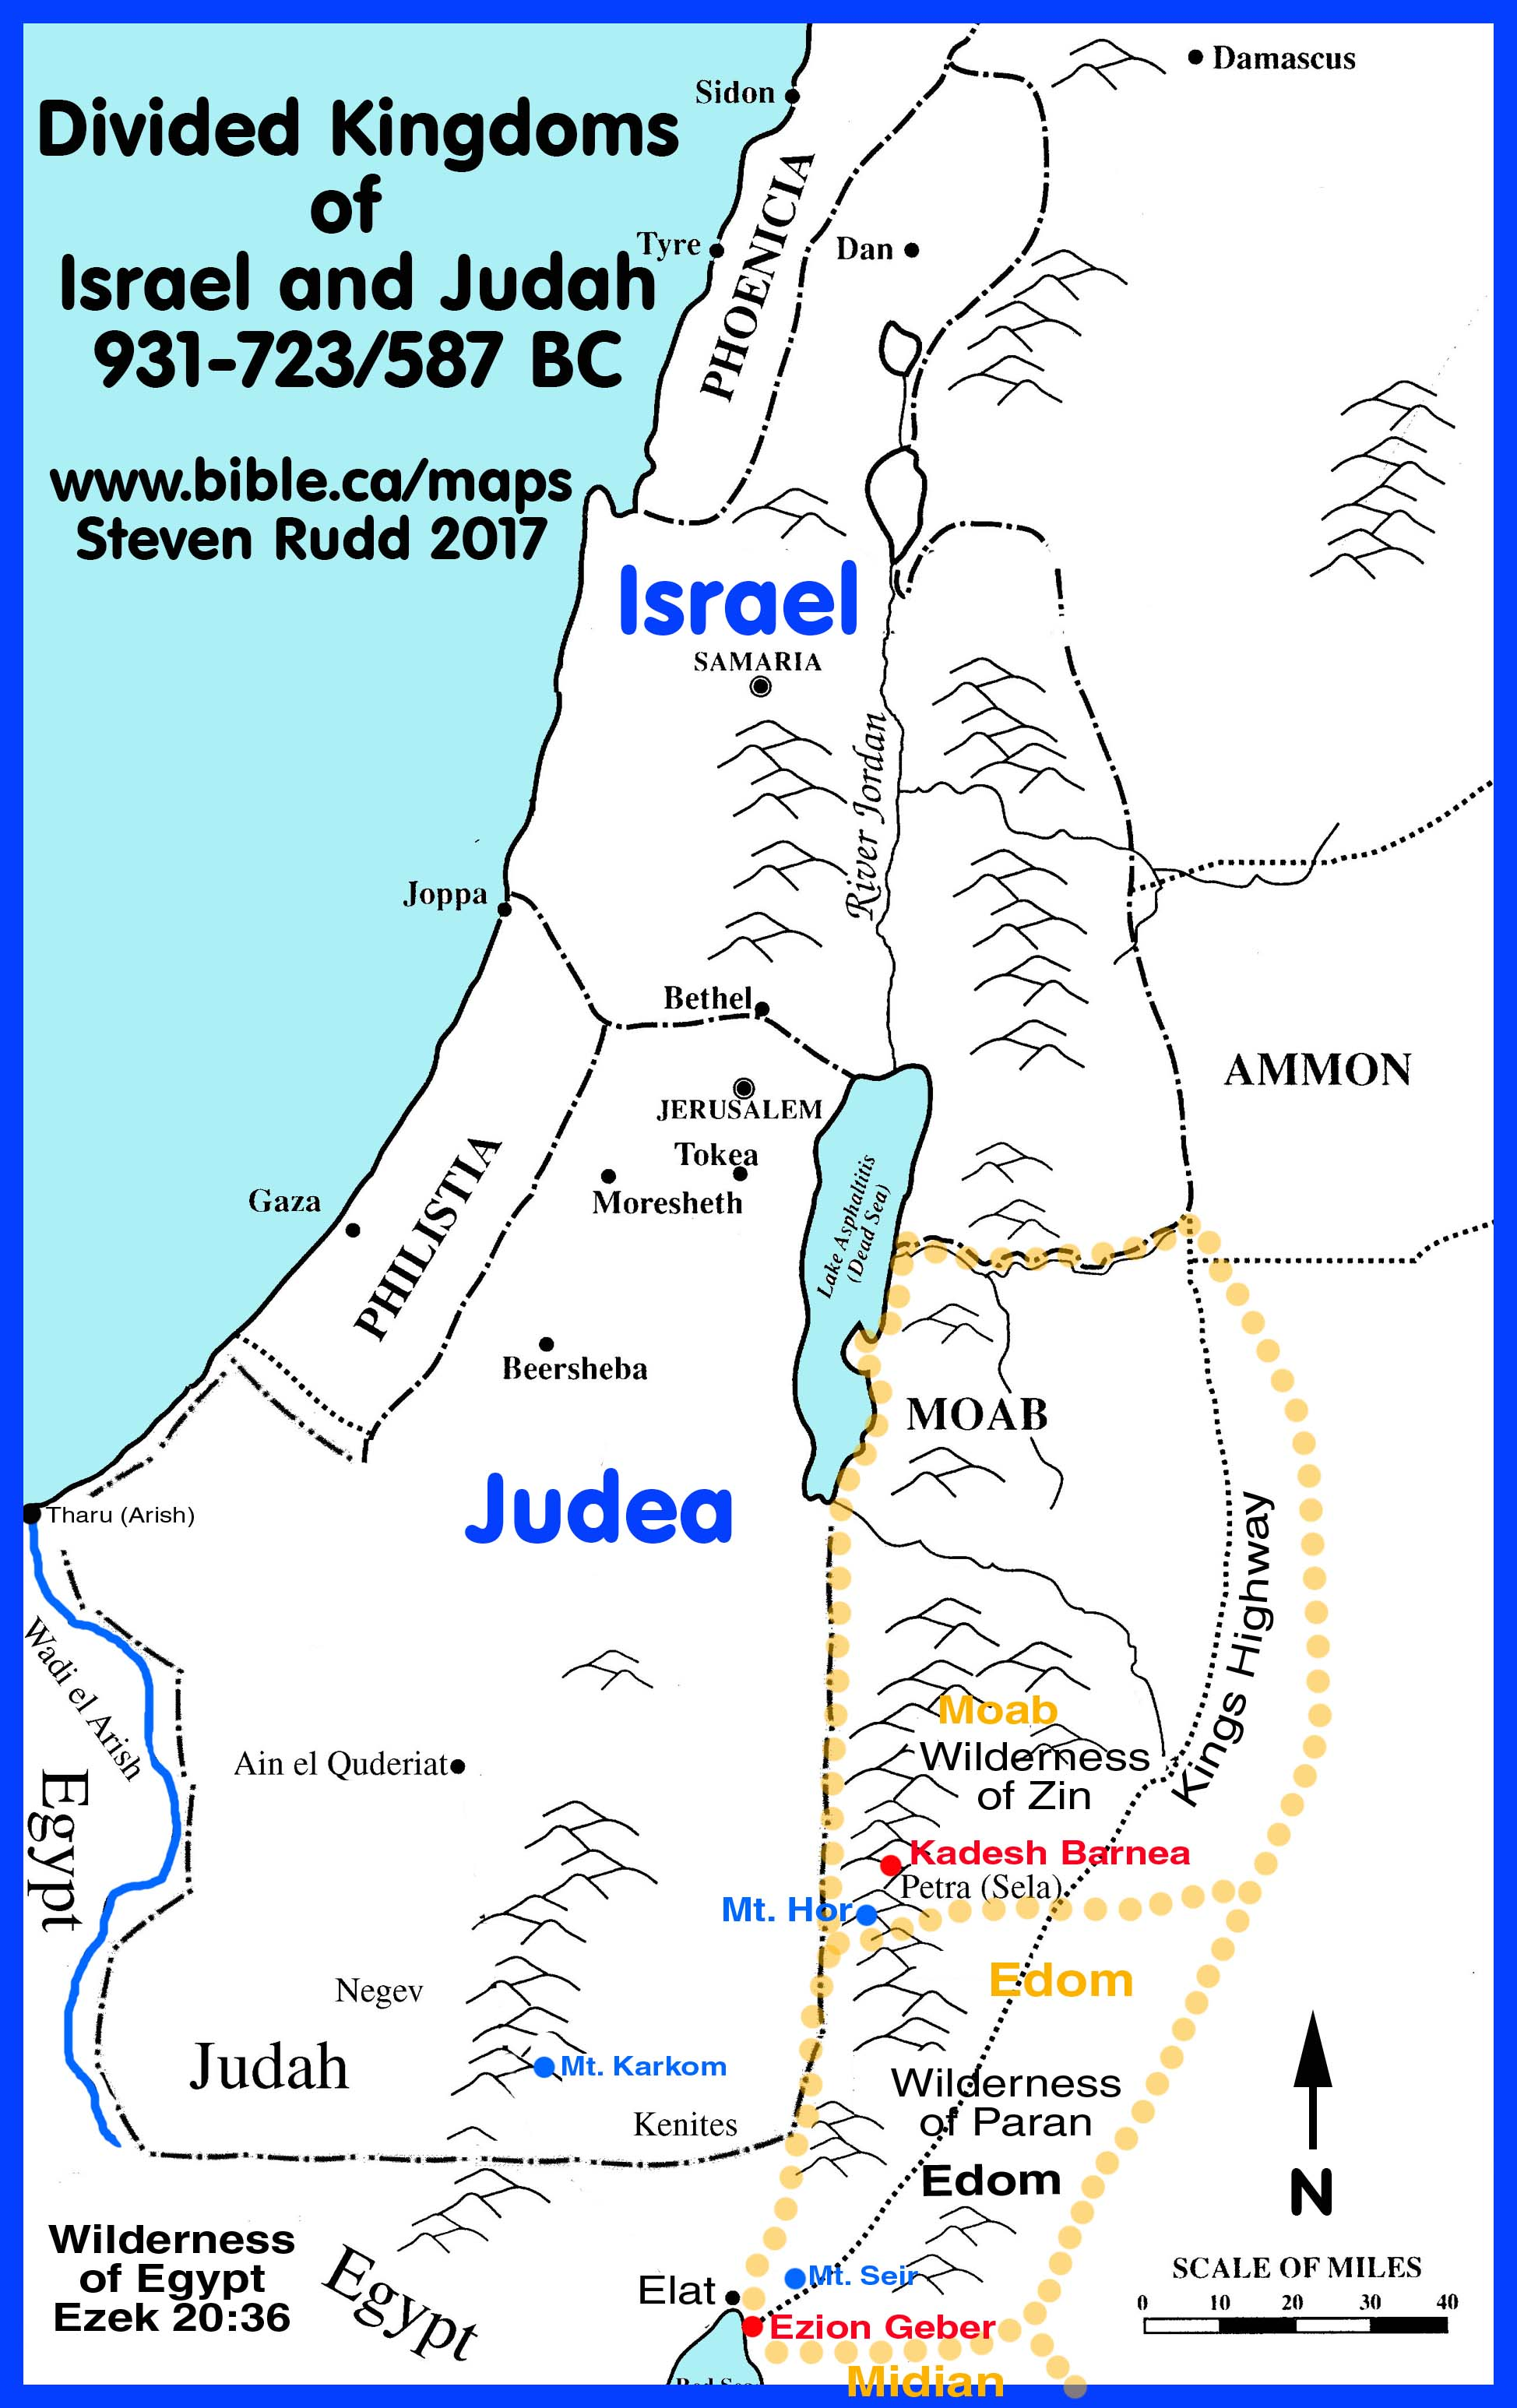 Map Divided Kingdom Israel Judah http://www.bible.ca/maps/maps-divided-kingdom.htm